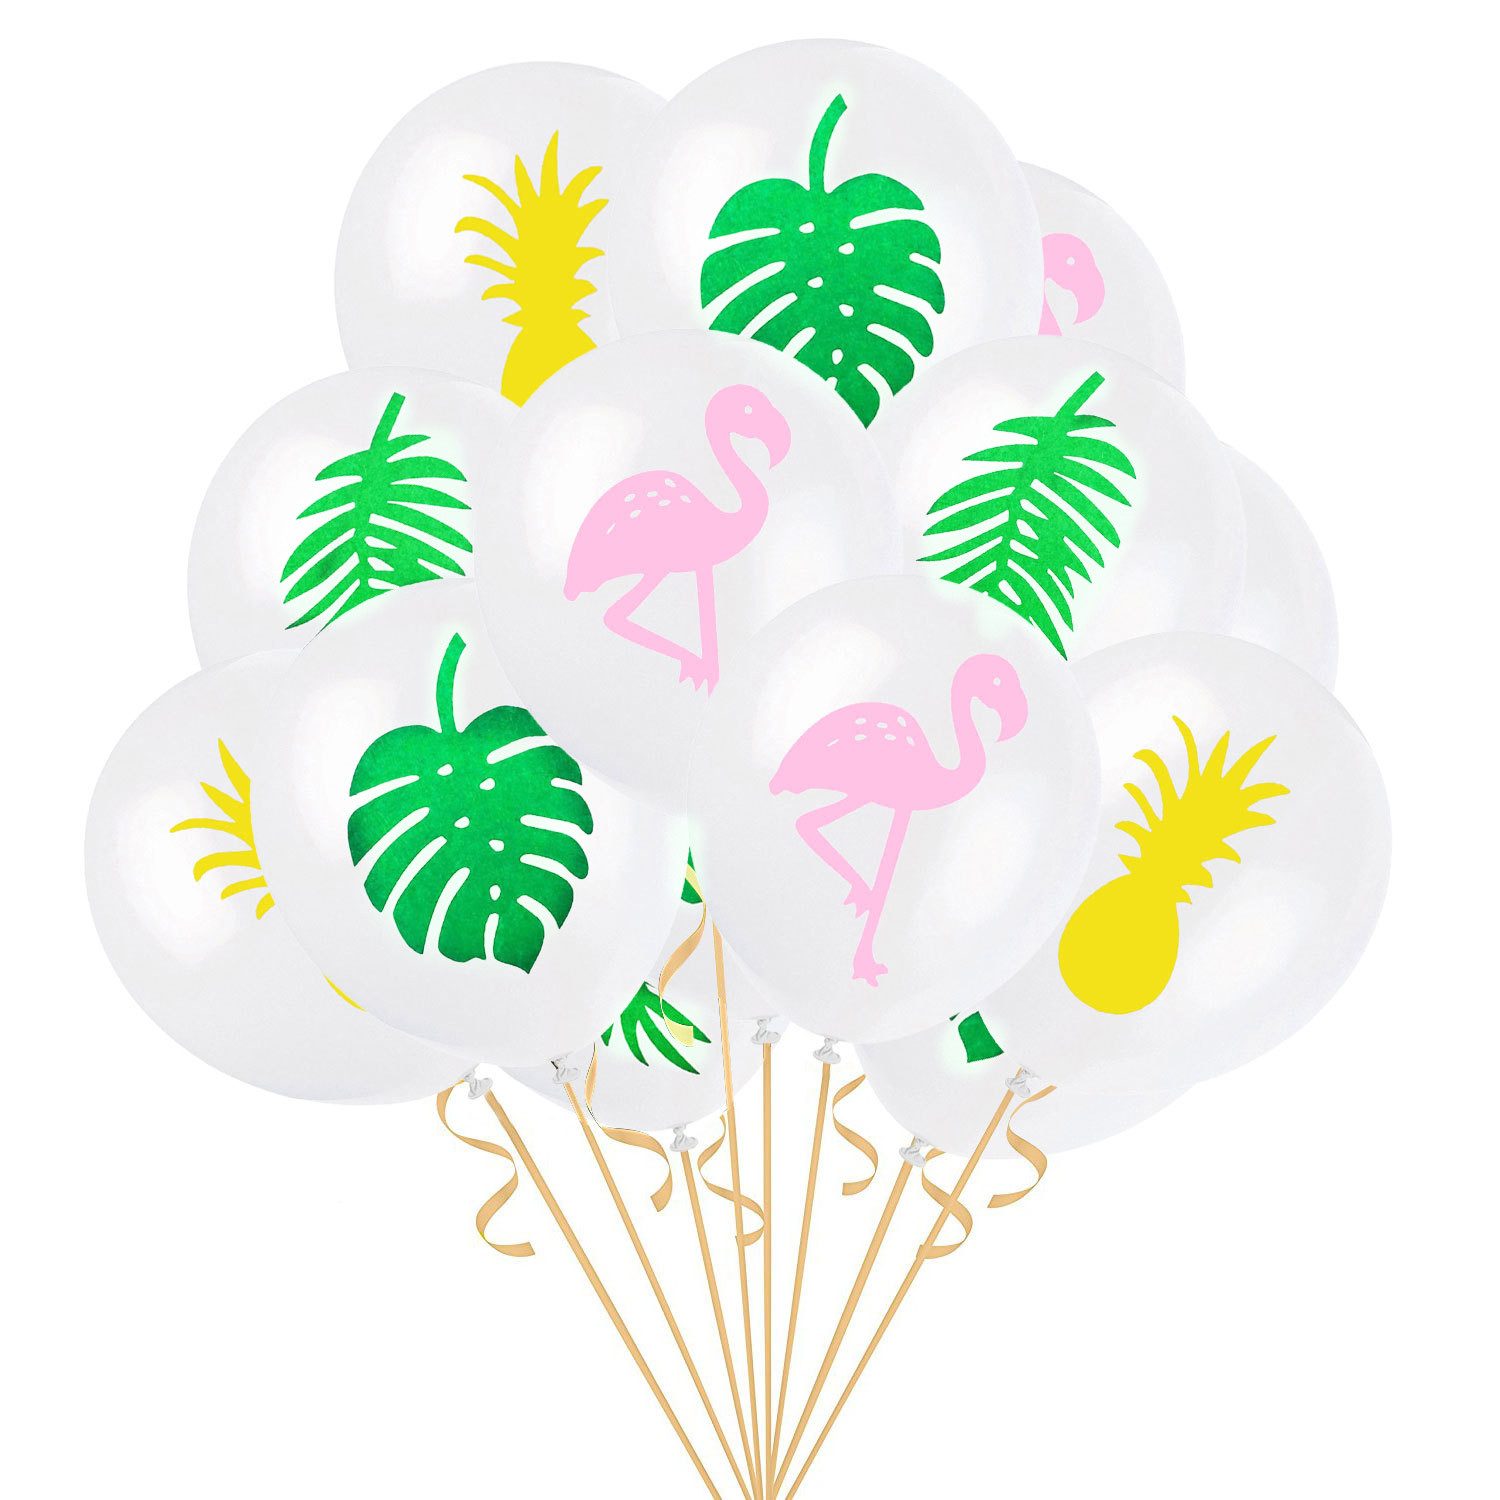 Printed Balloon Gold Green Latex Pineapple Theme Clear Balloon Luau Decoration Summer Party Pineapple Party Pineapple Latex Pineapple Balloons Luau Party Decorations